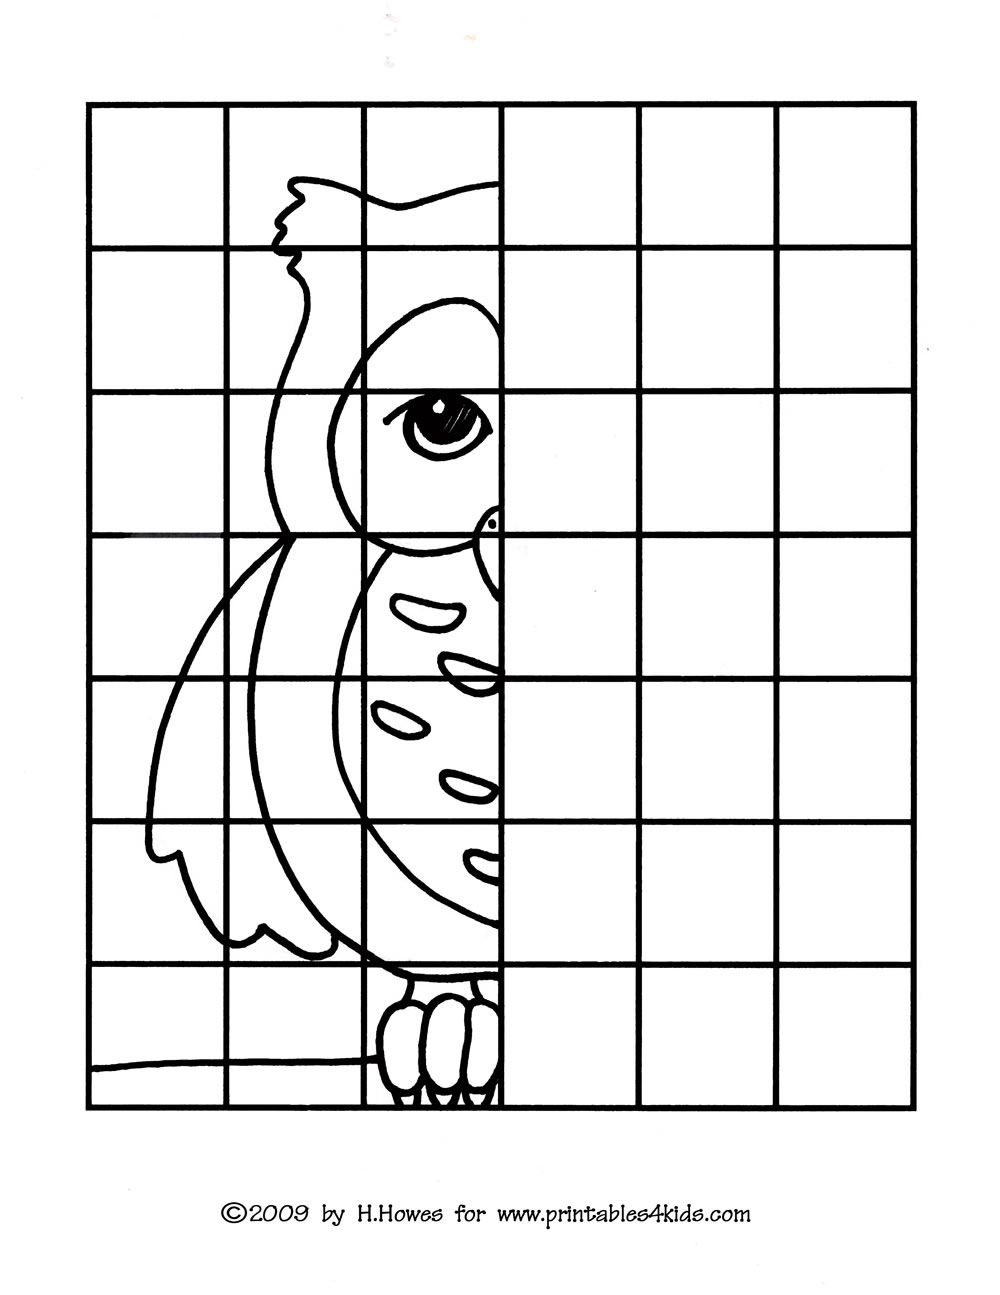 Drawing Lines In Cm Worksheet : Owl complete the picture drawing printables for kids